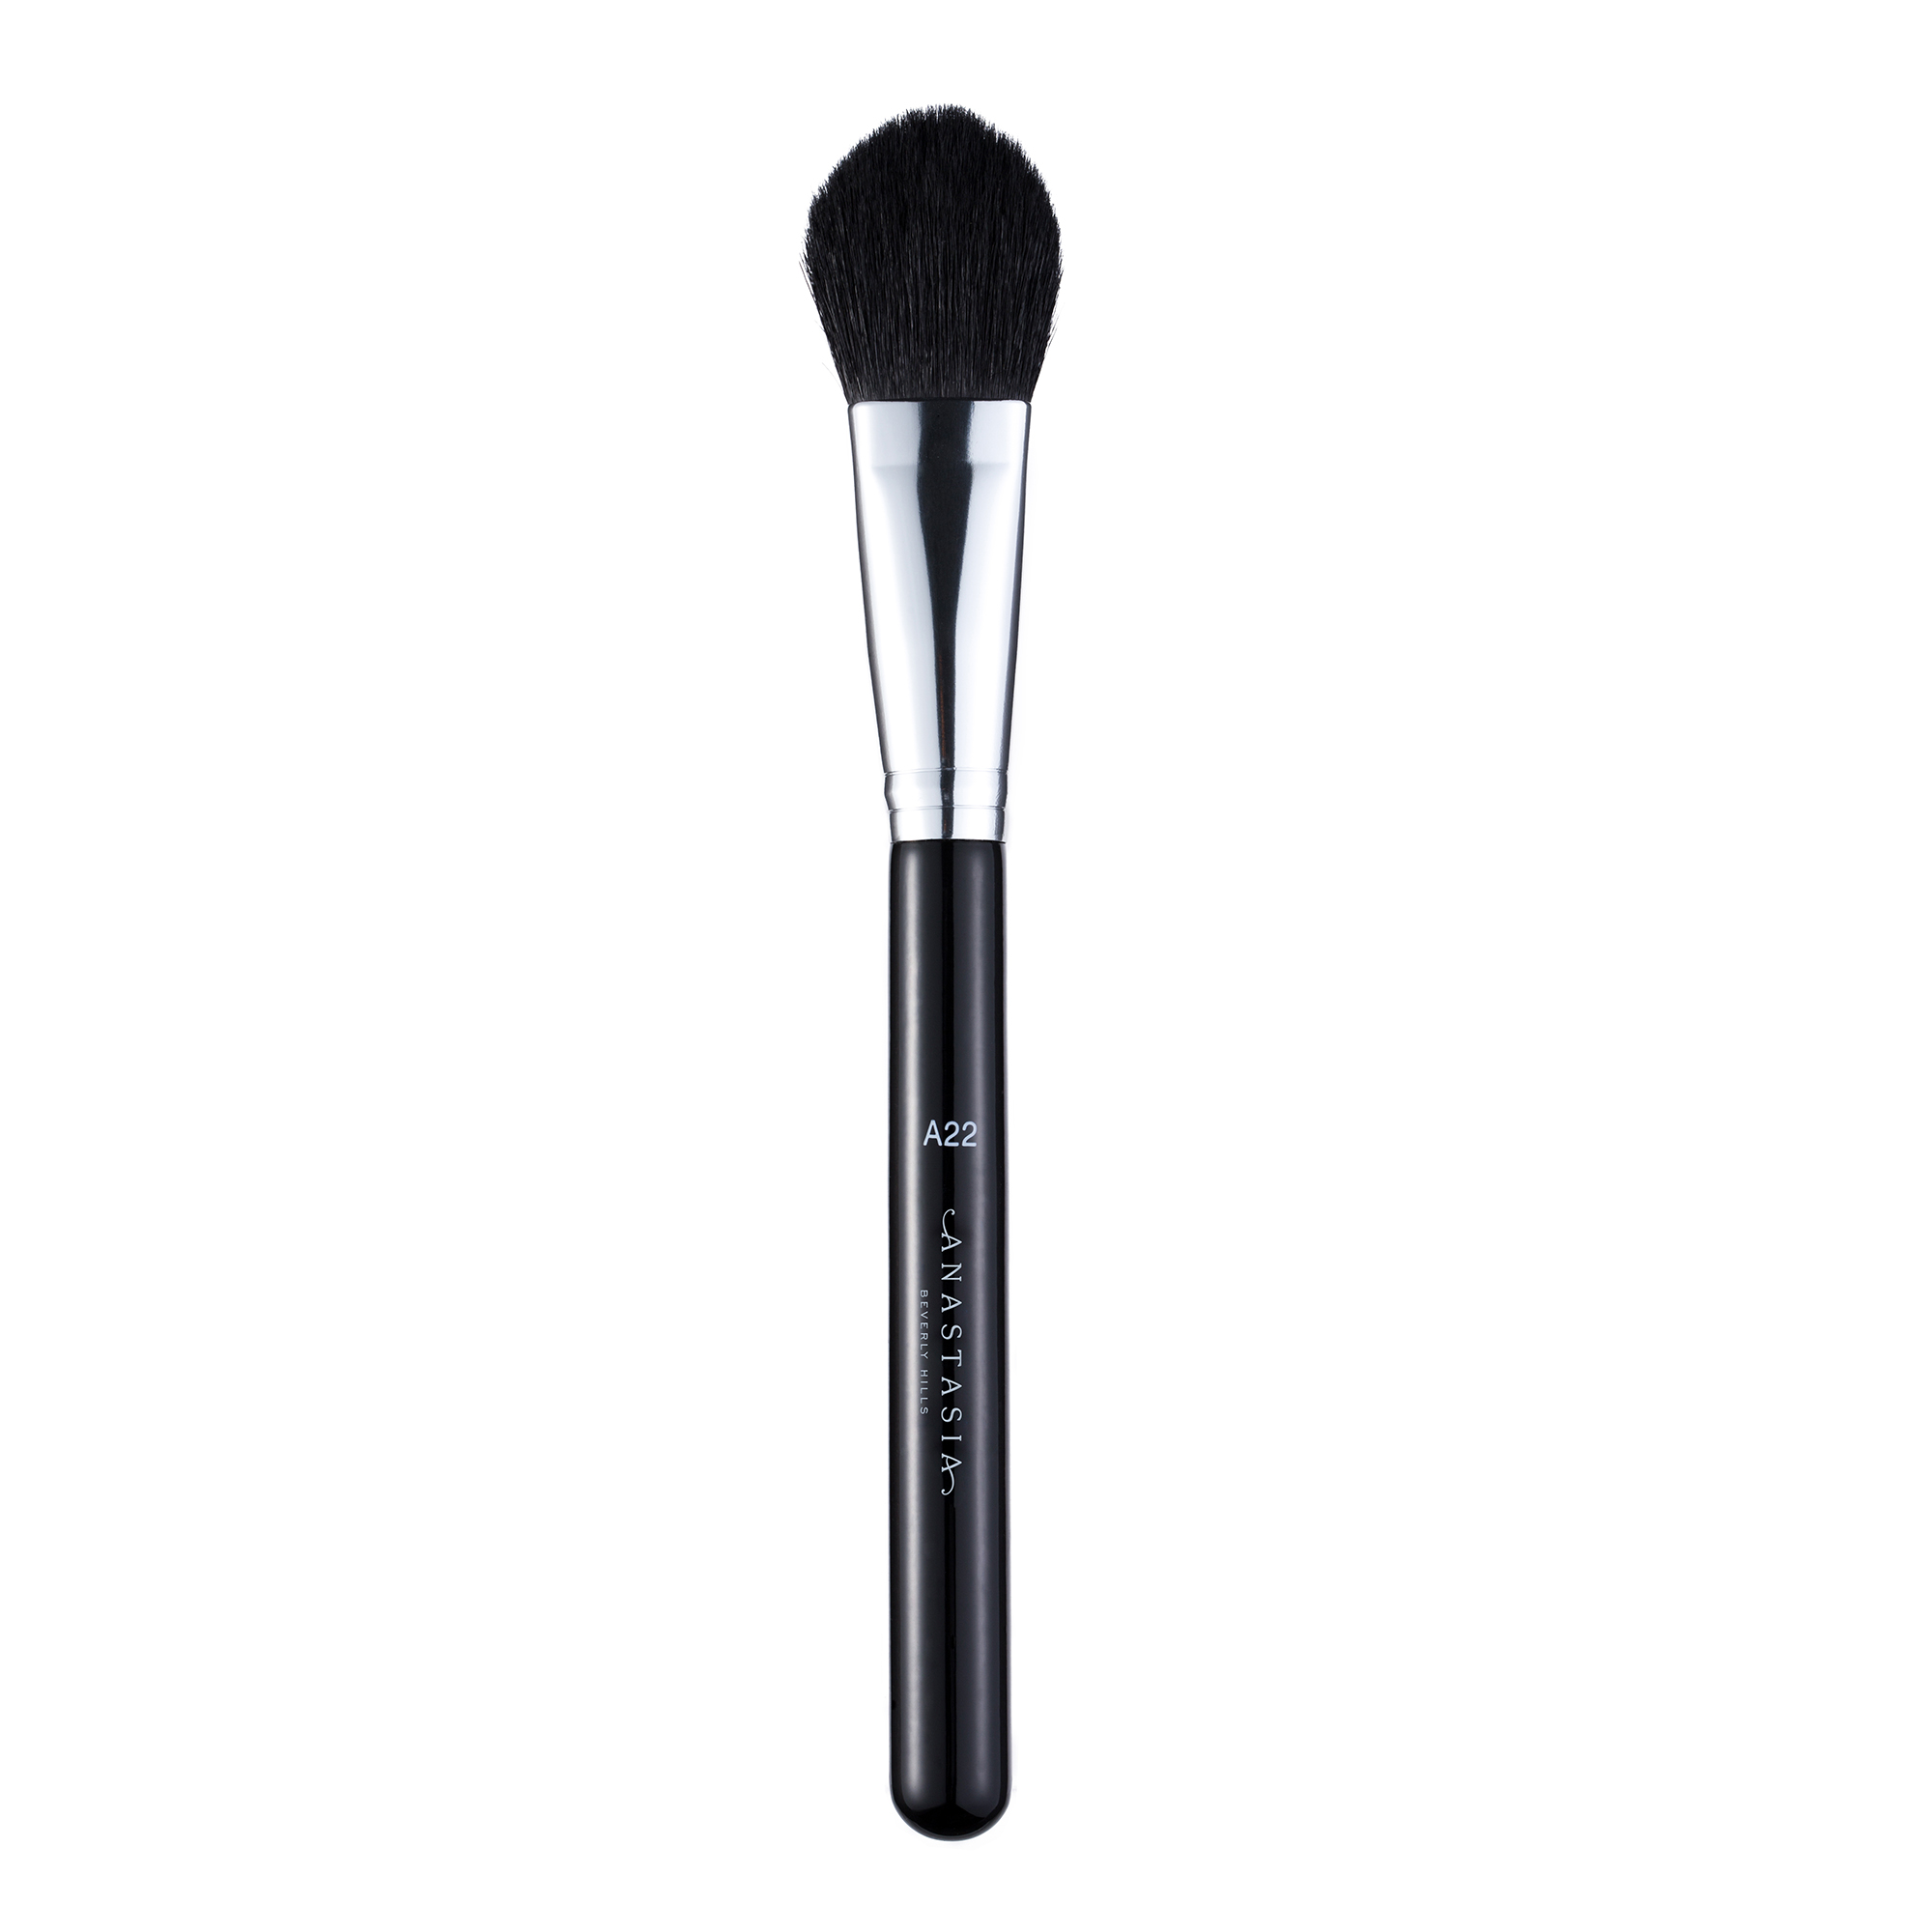 Pro Brush- A22 Pointed Cheek Brush